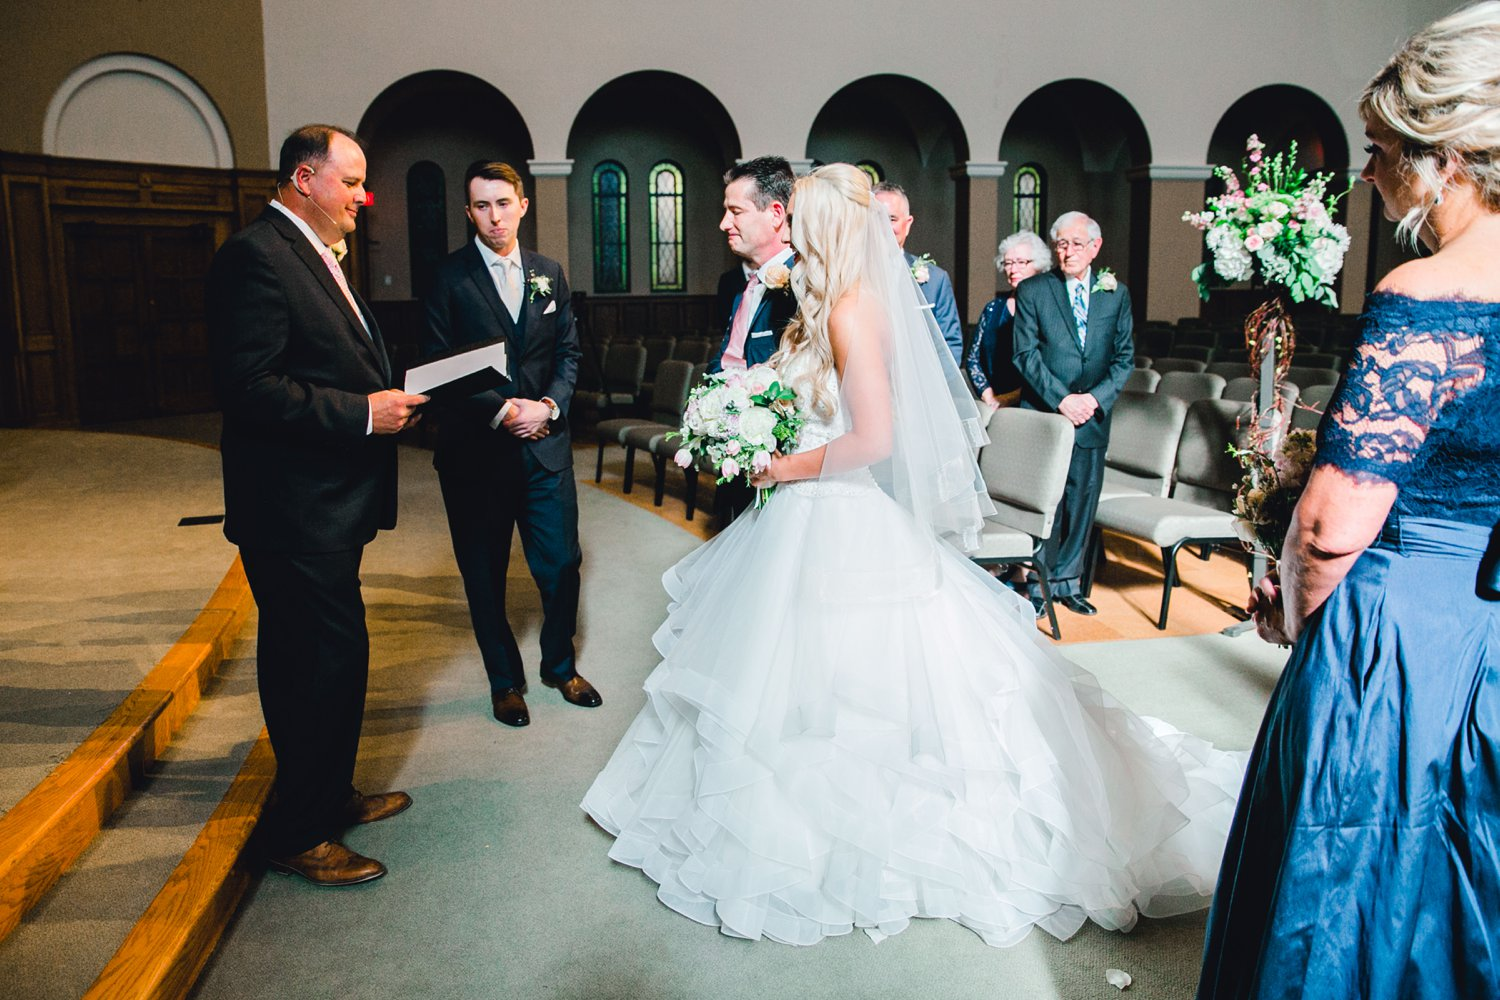 MADI_AND_WILL_STEPHENS_ALLEEJ_LUBBOCK_PHOTOGRAPHER_TEXAS+TECH+FRAZIER_ALUMNI0094.jpg